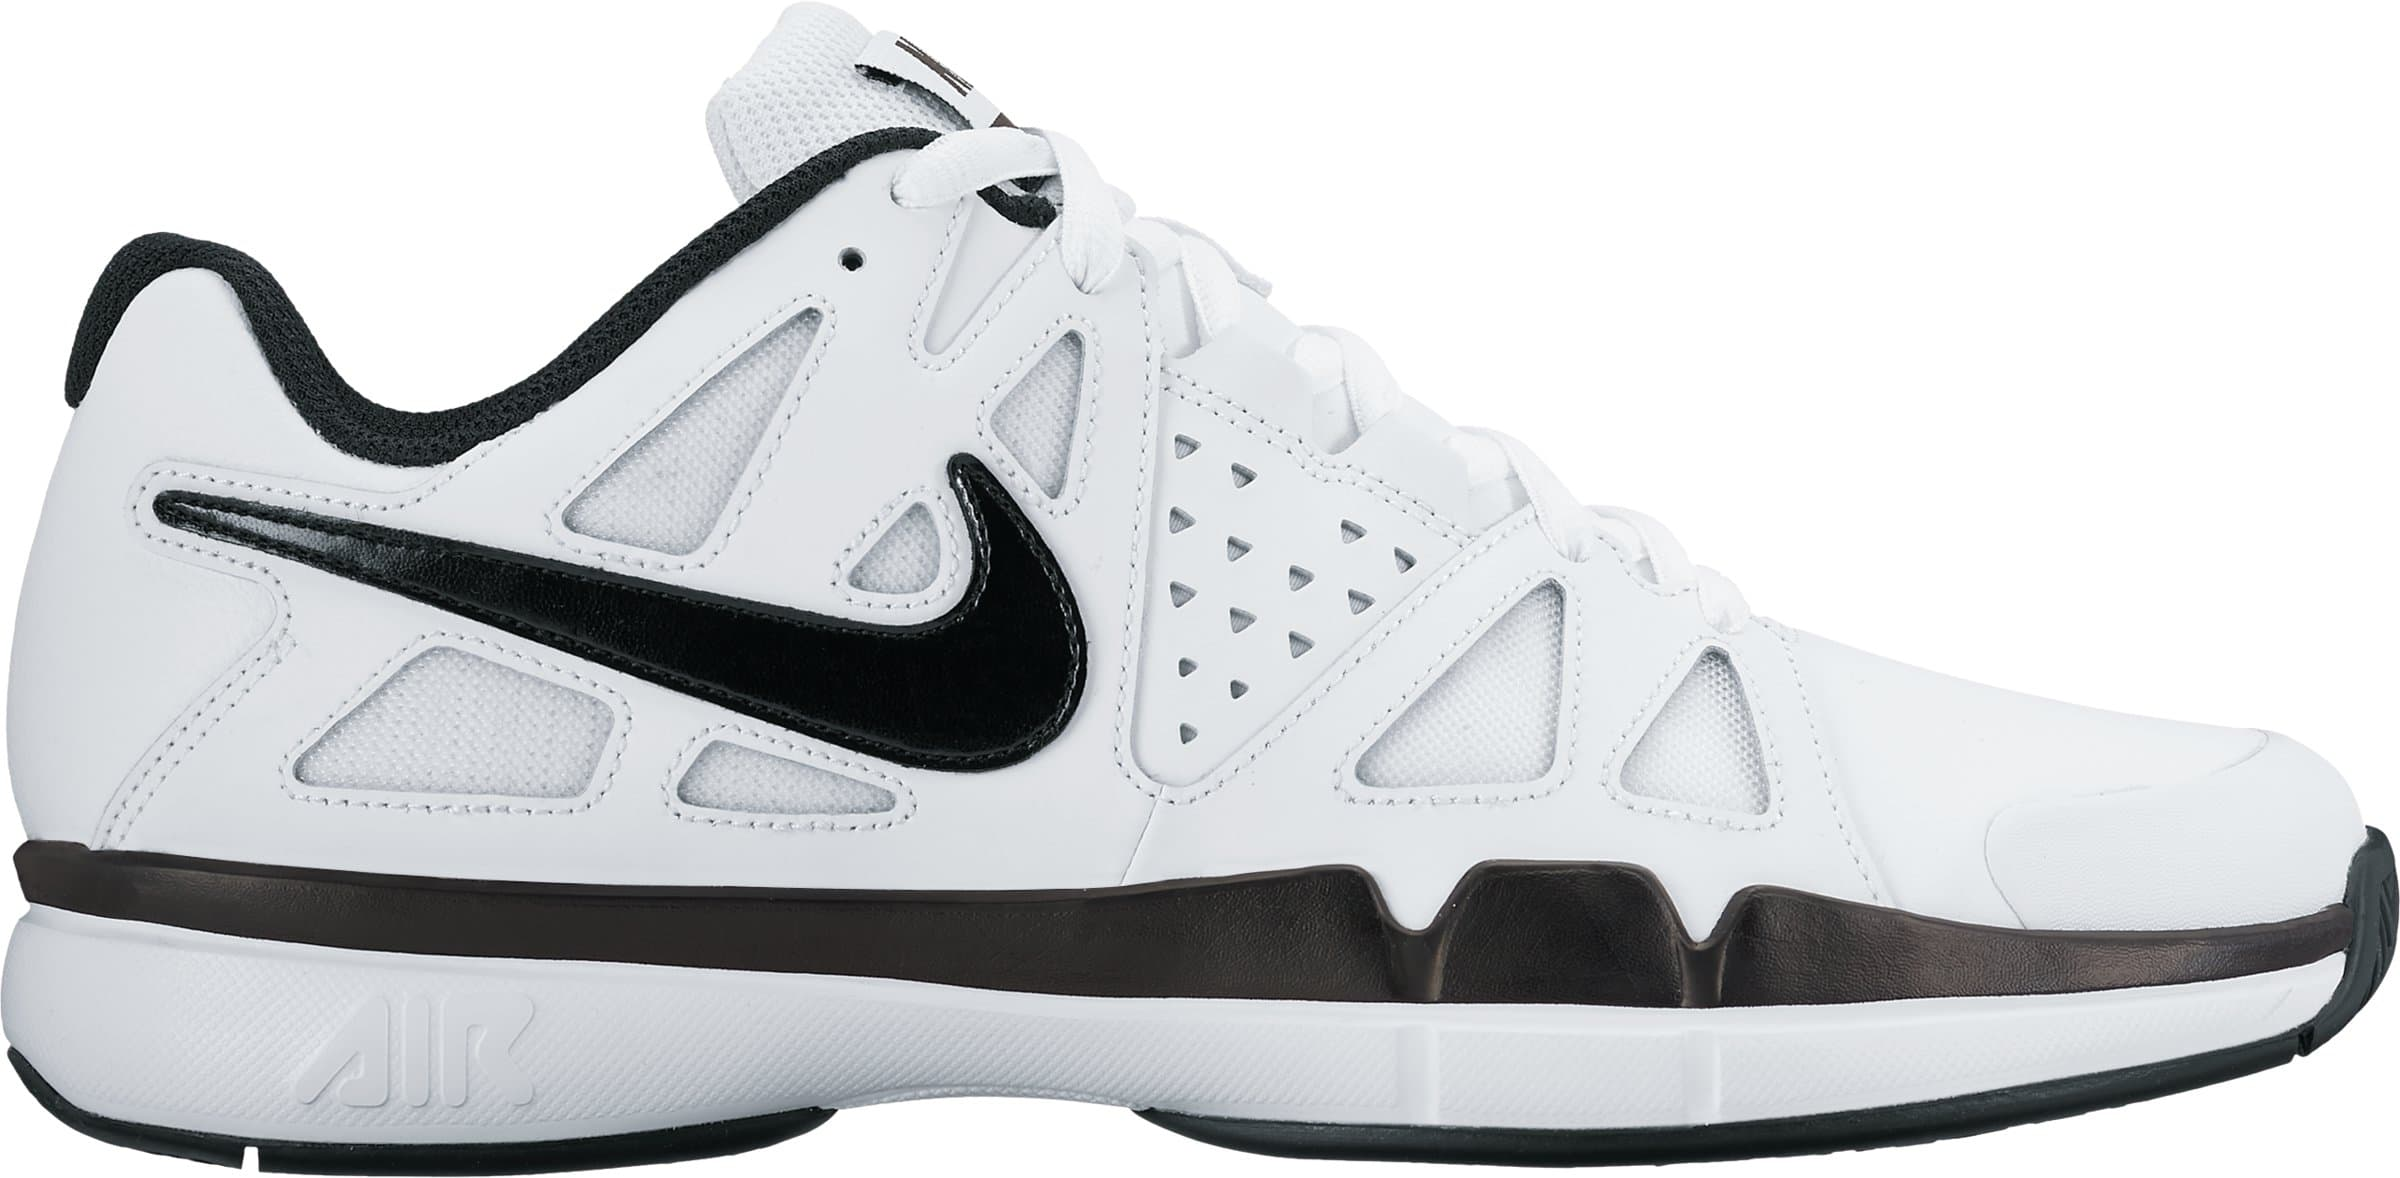 Nike Air Vapor Advantage Herren-Tennisschuh